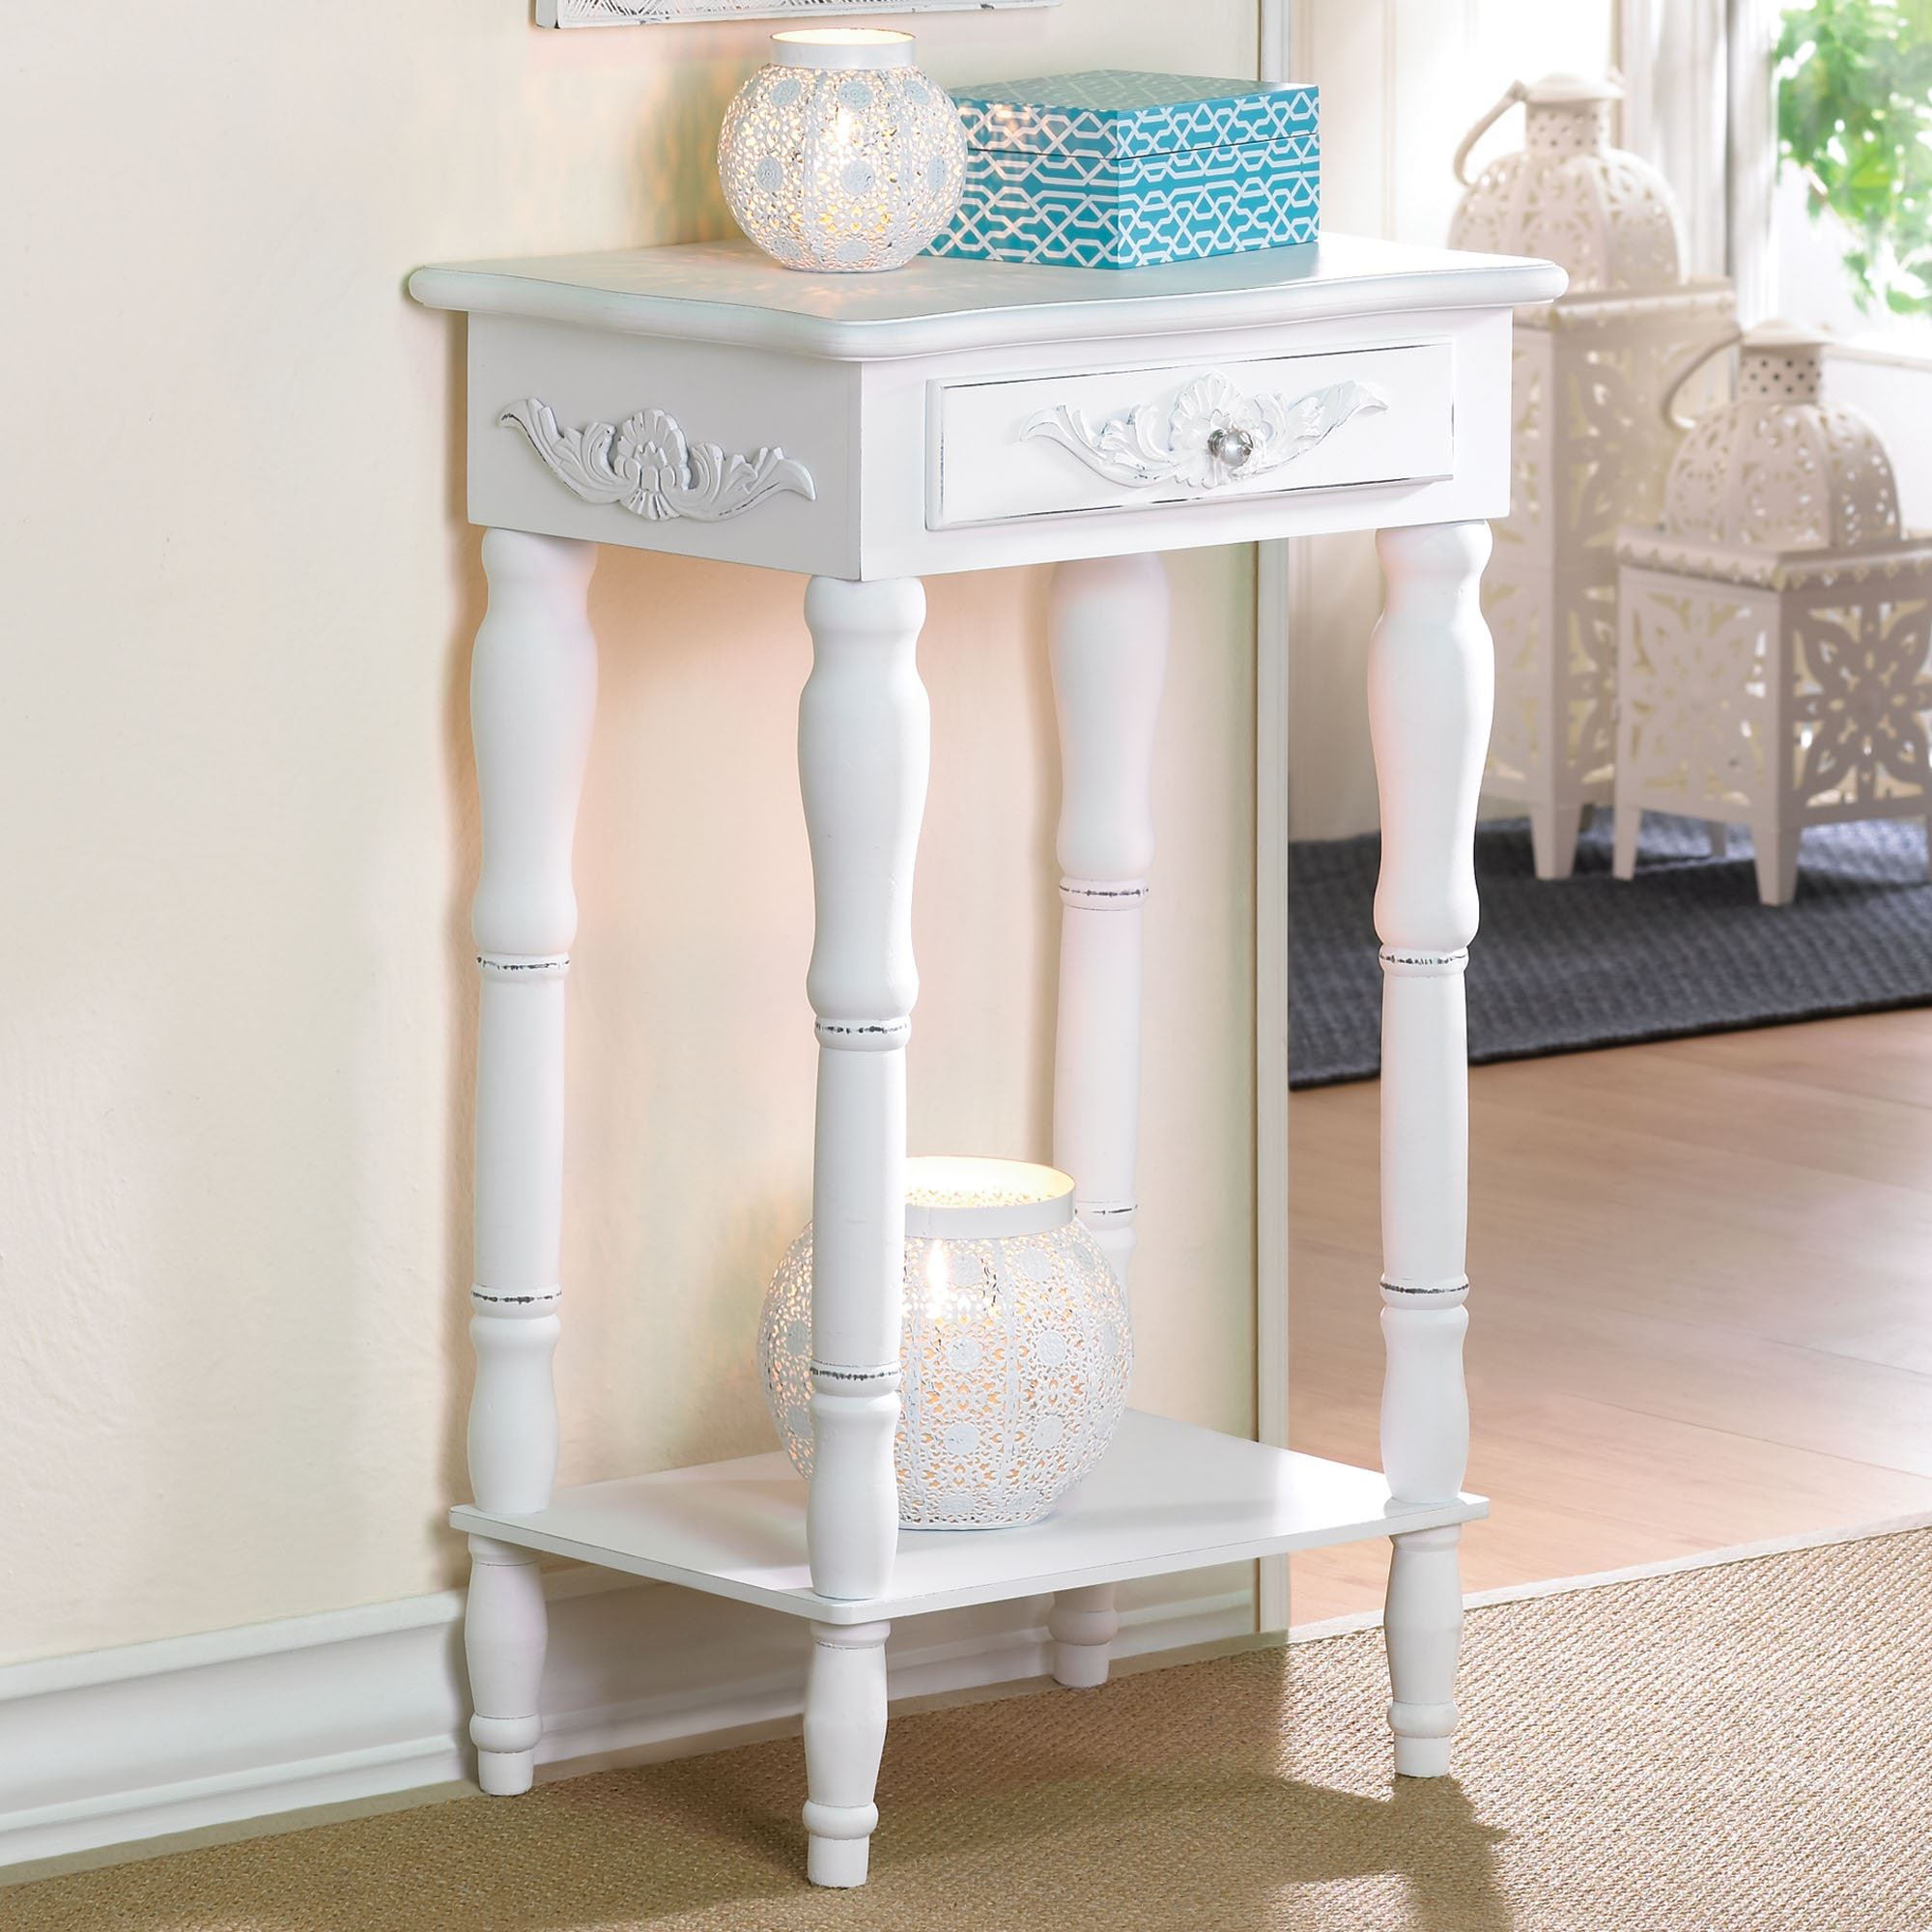 cosenza antique white accent table with drawer touch zoom end summer outdoor clearance concrete look cast aluminum farm door quilted runners free patterns unusual tables mosaic